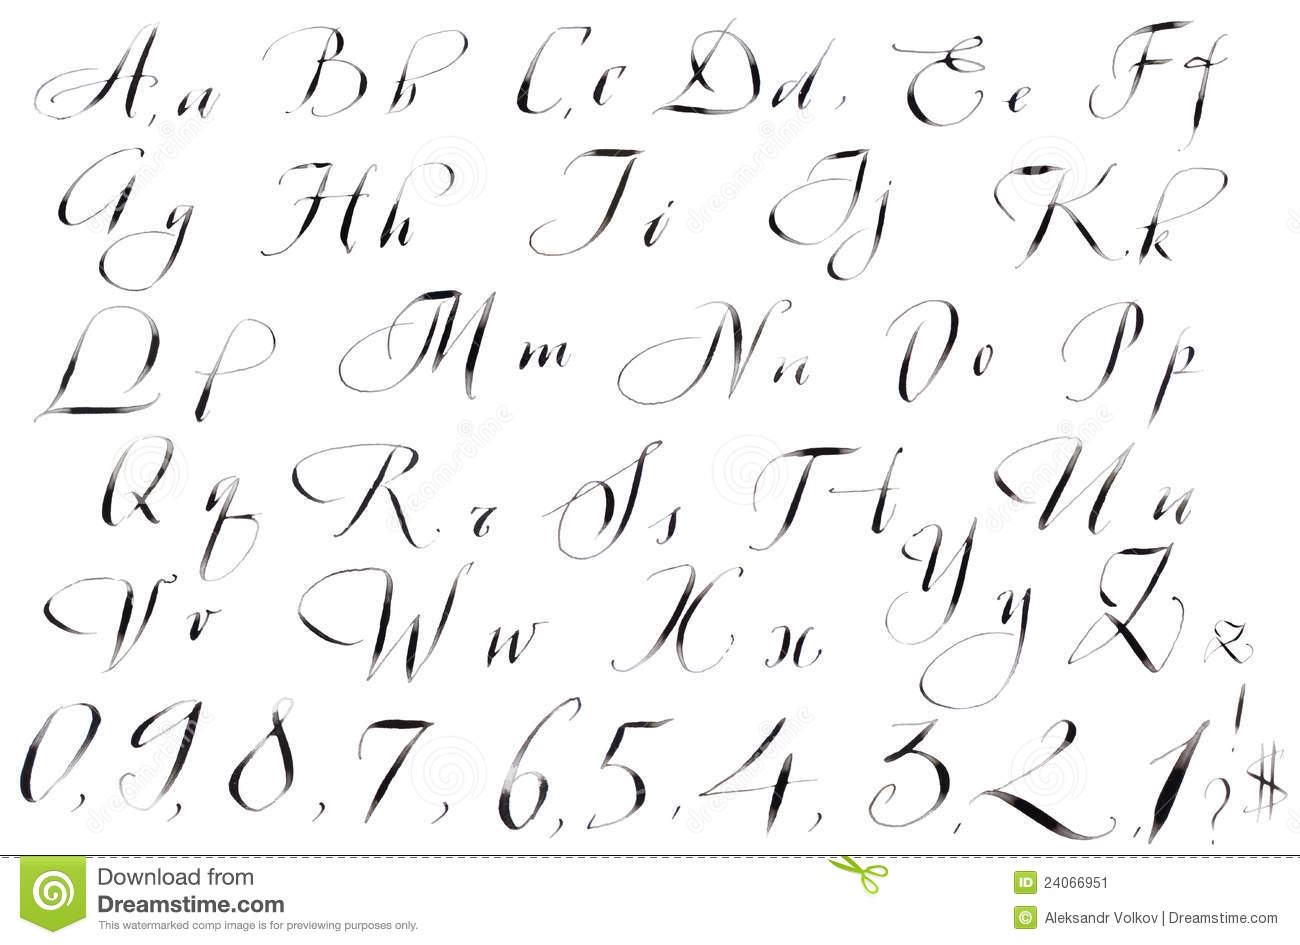 Cursive writing a to z small letters pdf free